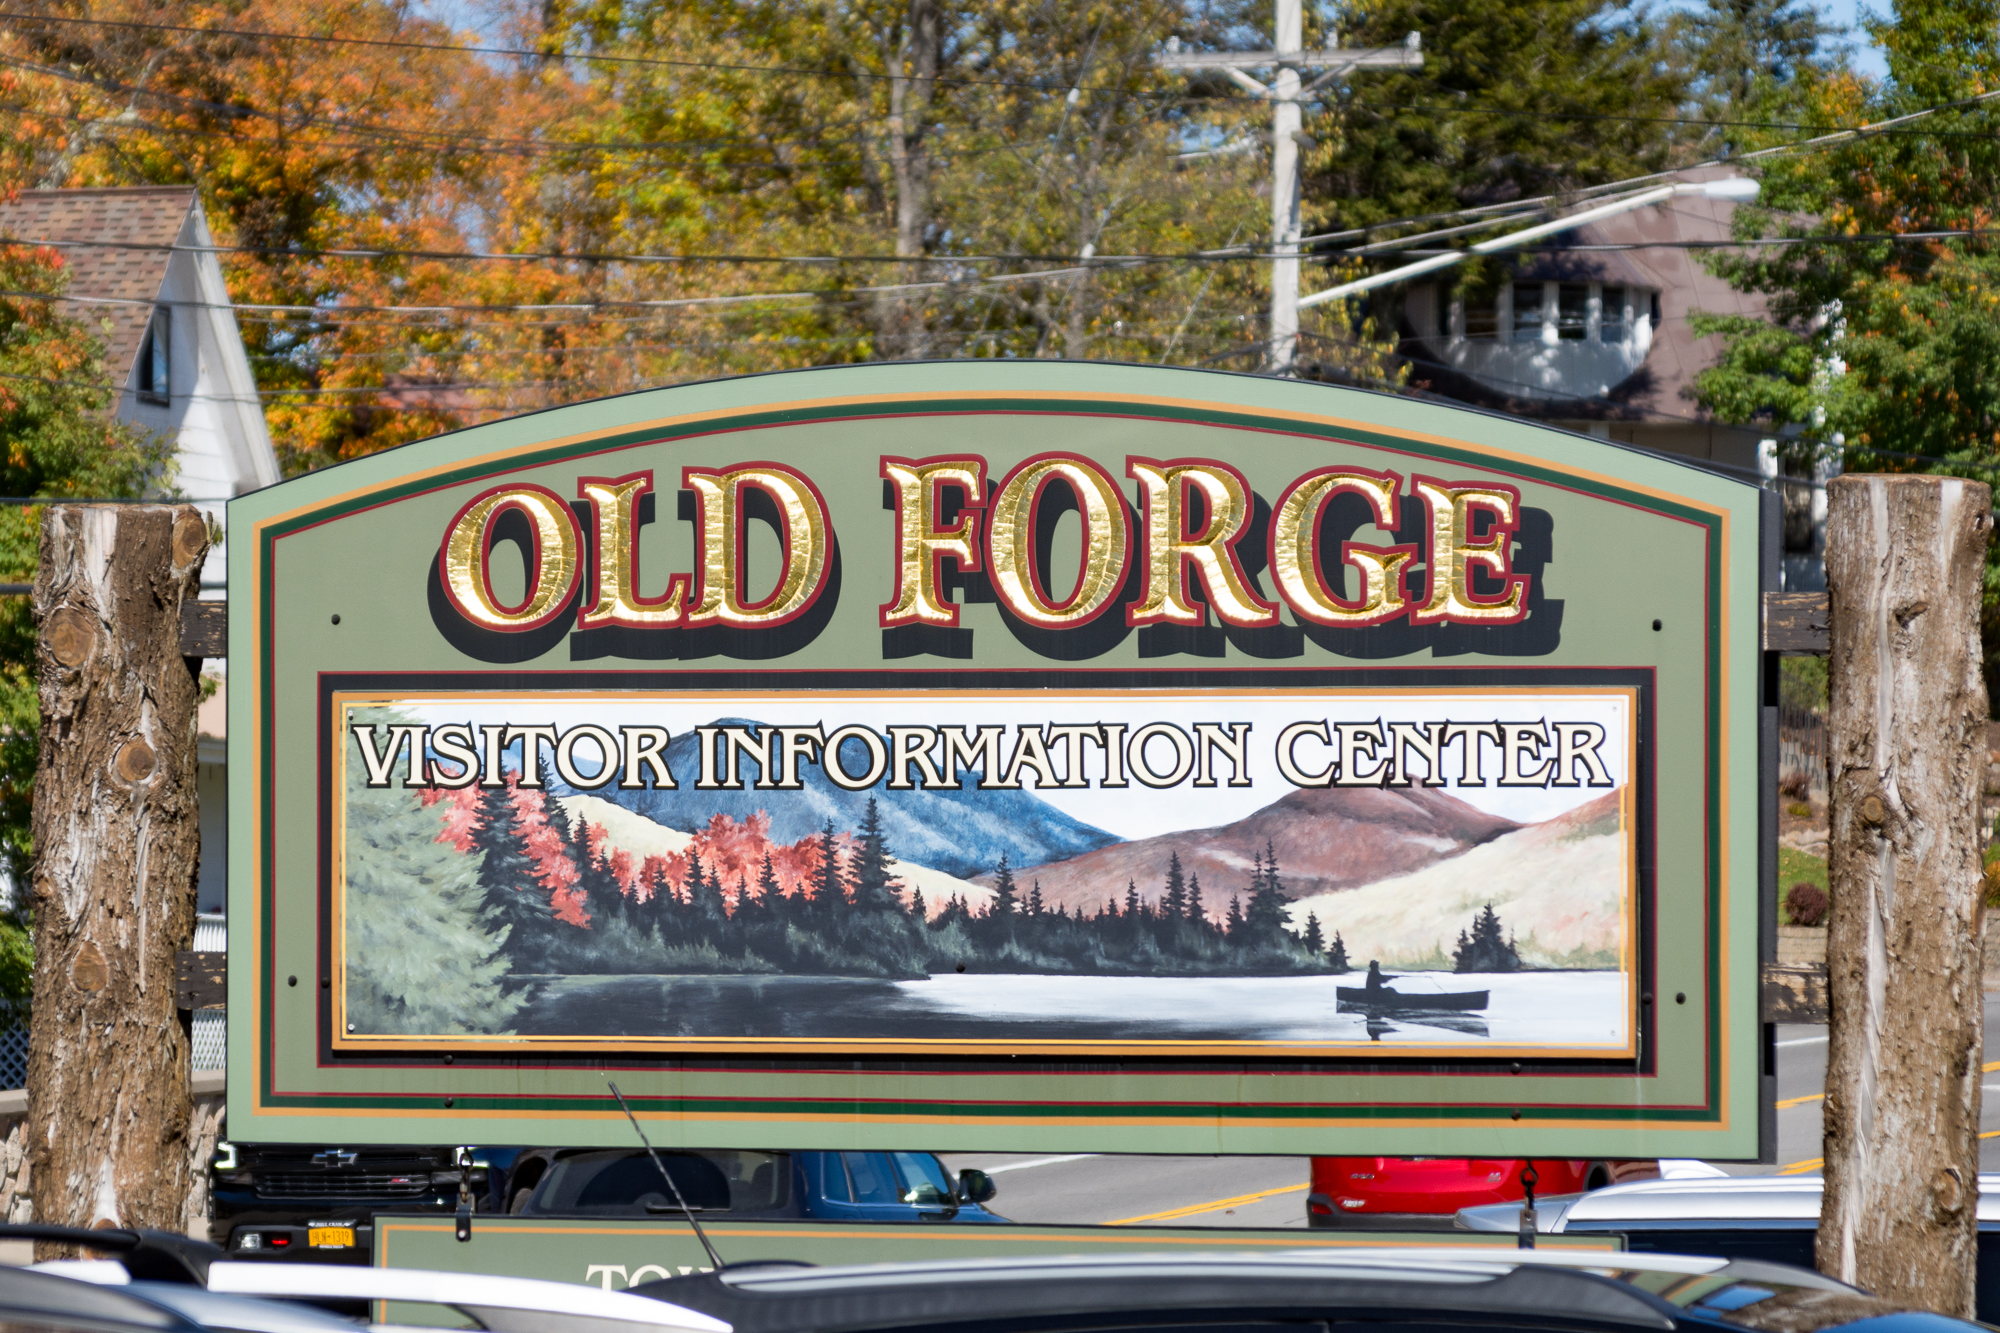 A day in Old Forge: Photo essay of people, places in Upstate NY hamlet